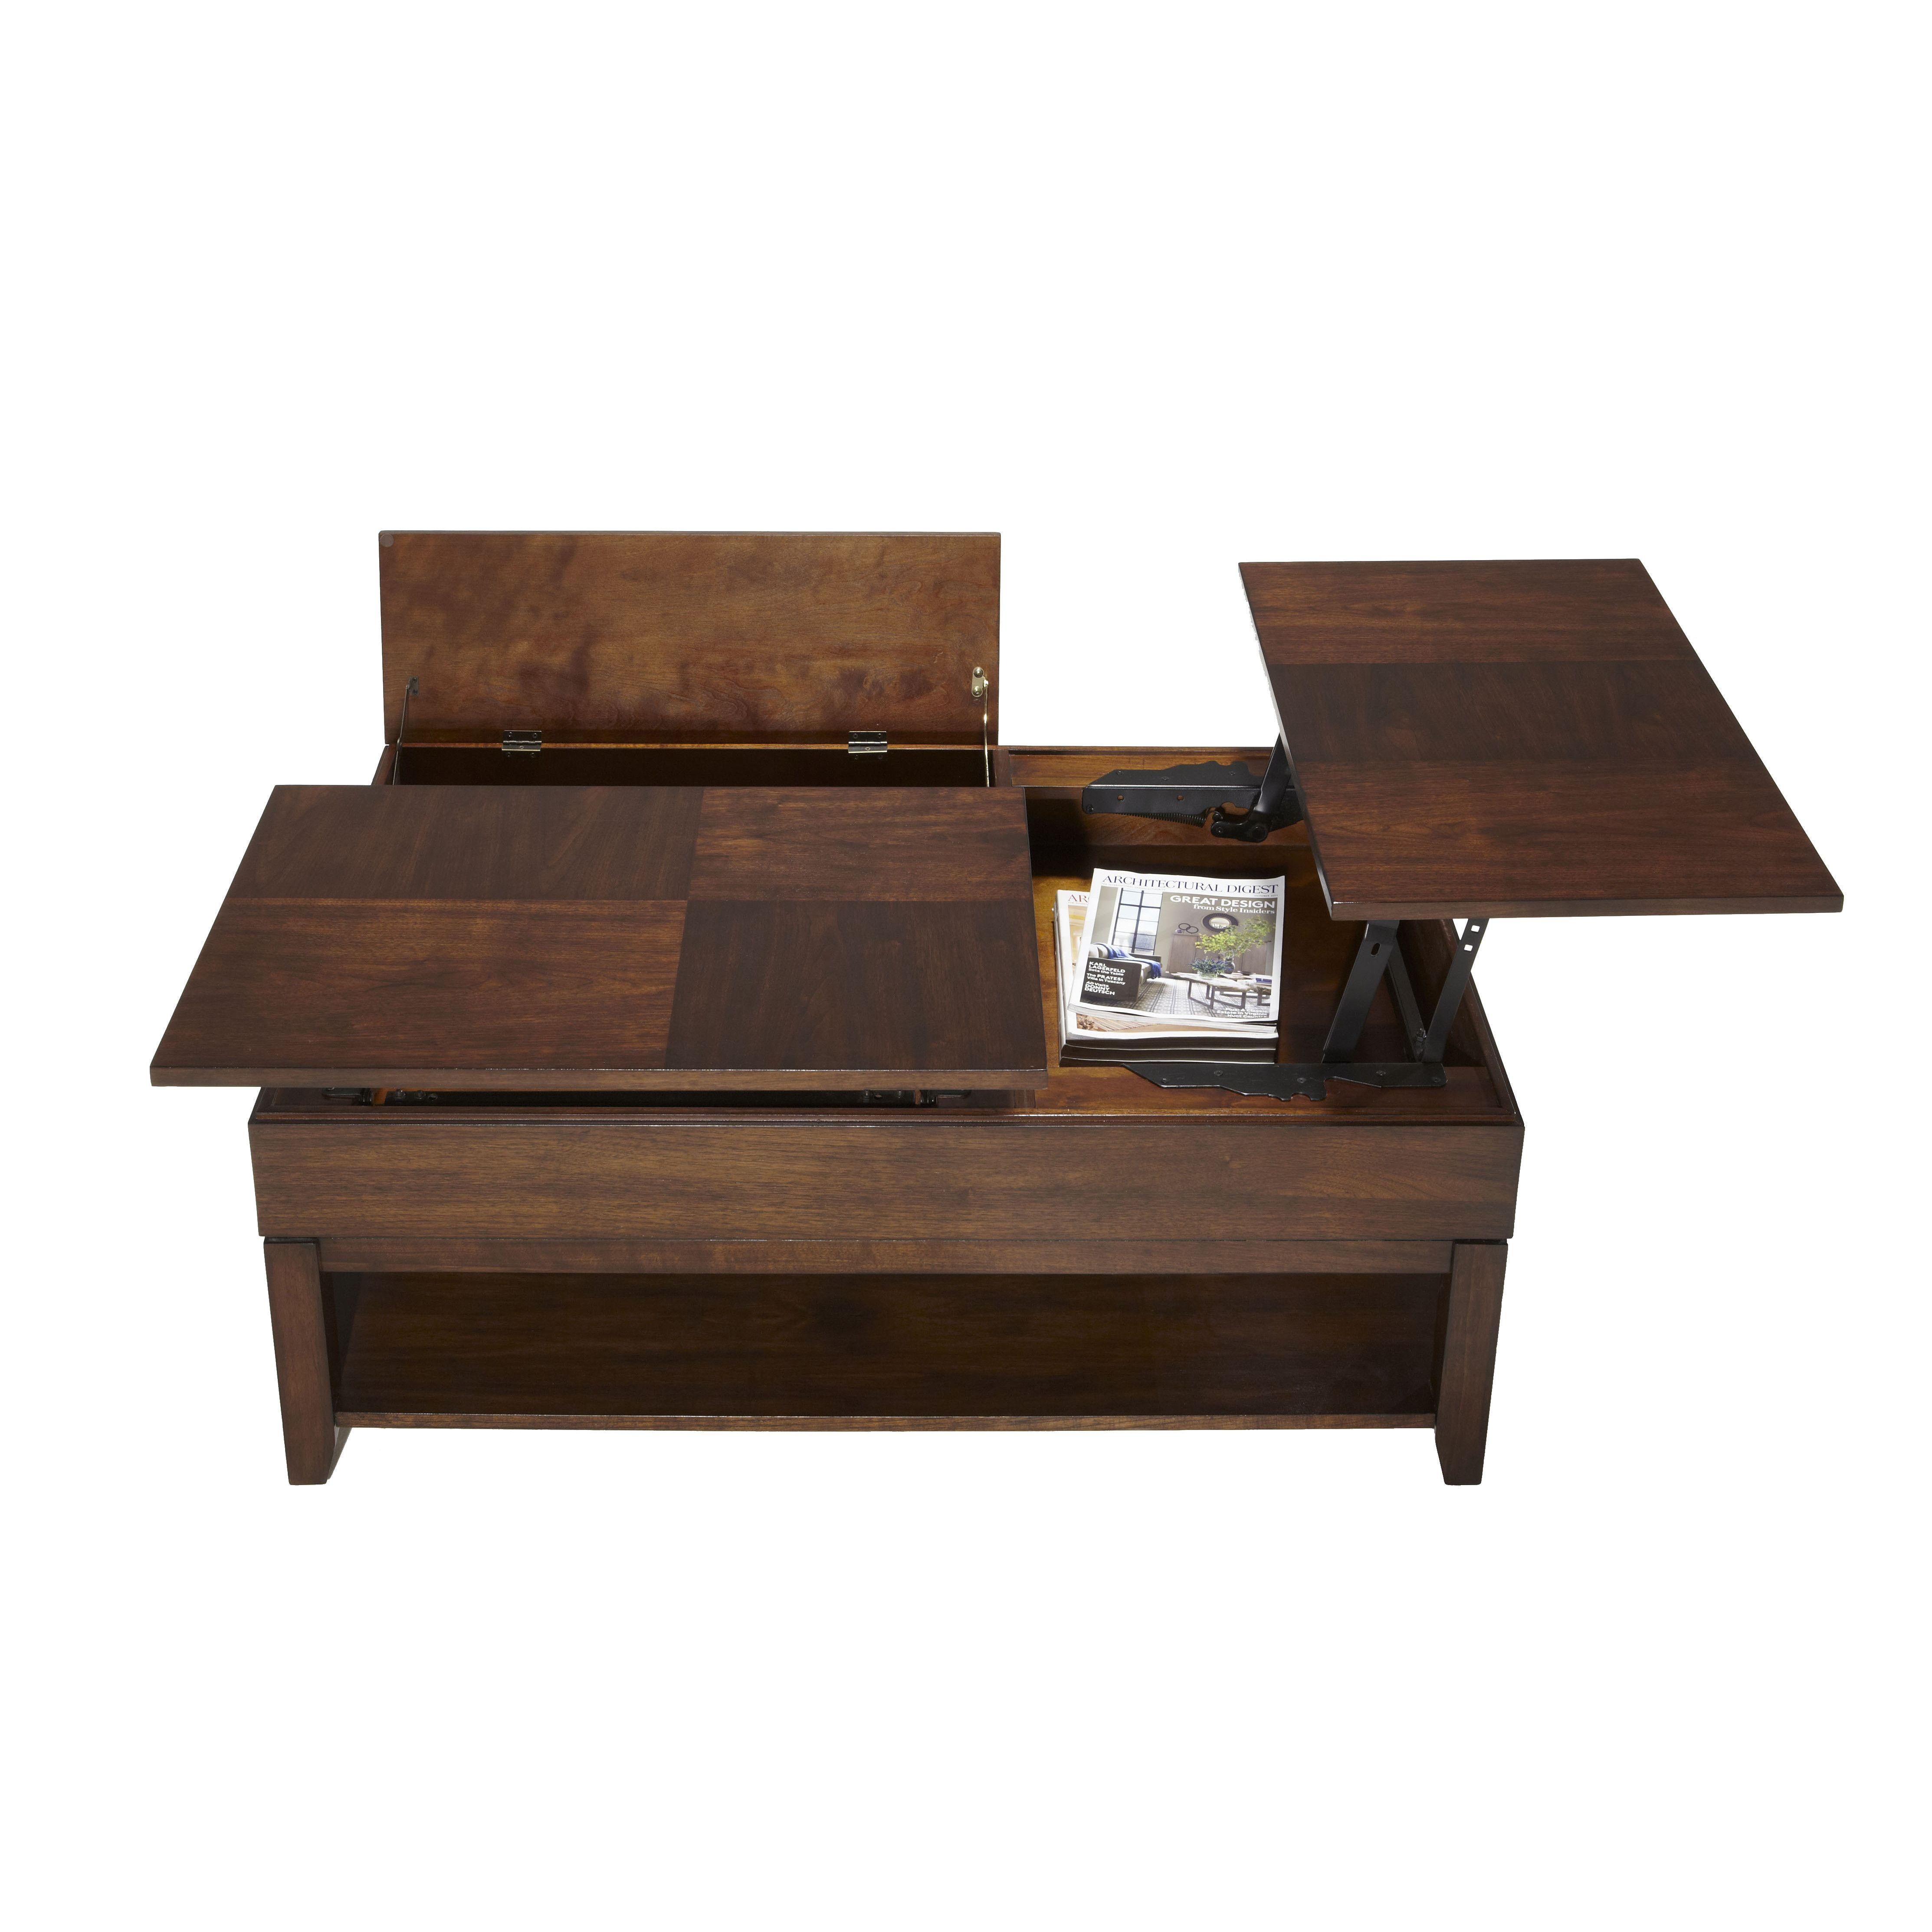 Progressive Furniture Inc. Daytona Coffee Table With Double Lift Top